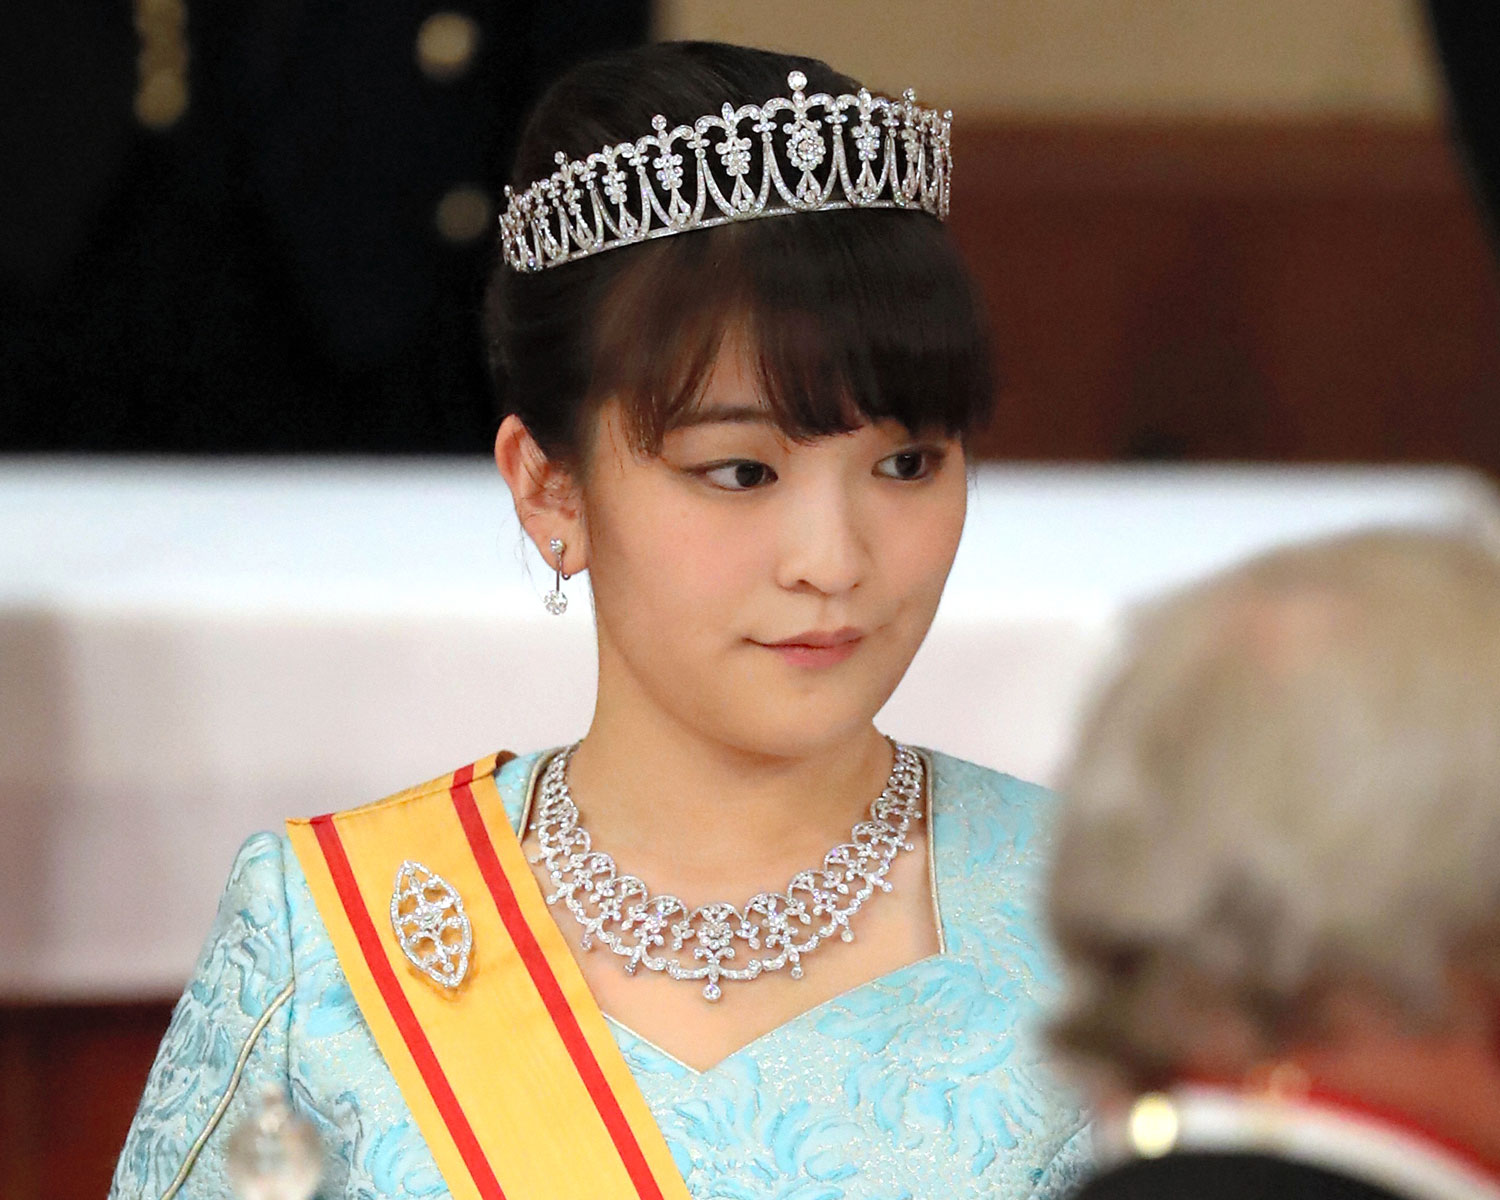 Japan's Princess Mako to Marry a Commoner and Relinquish ...